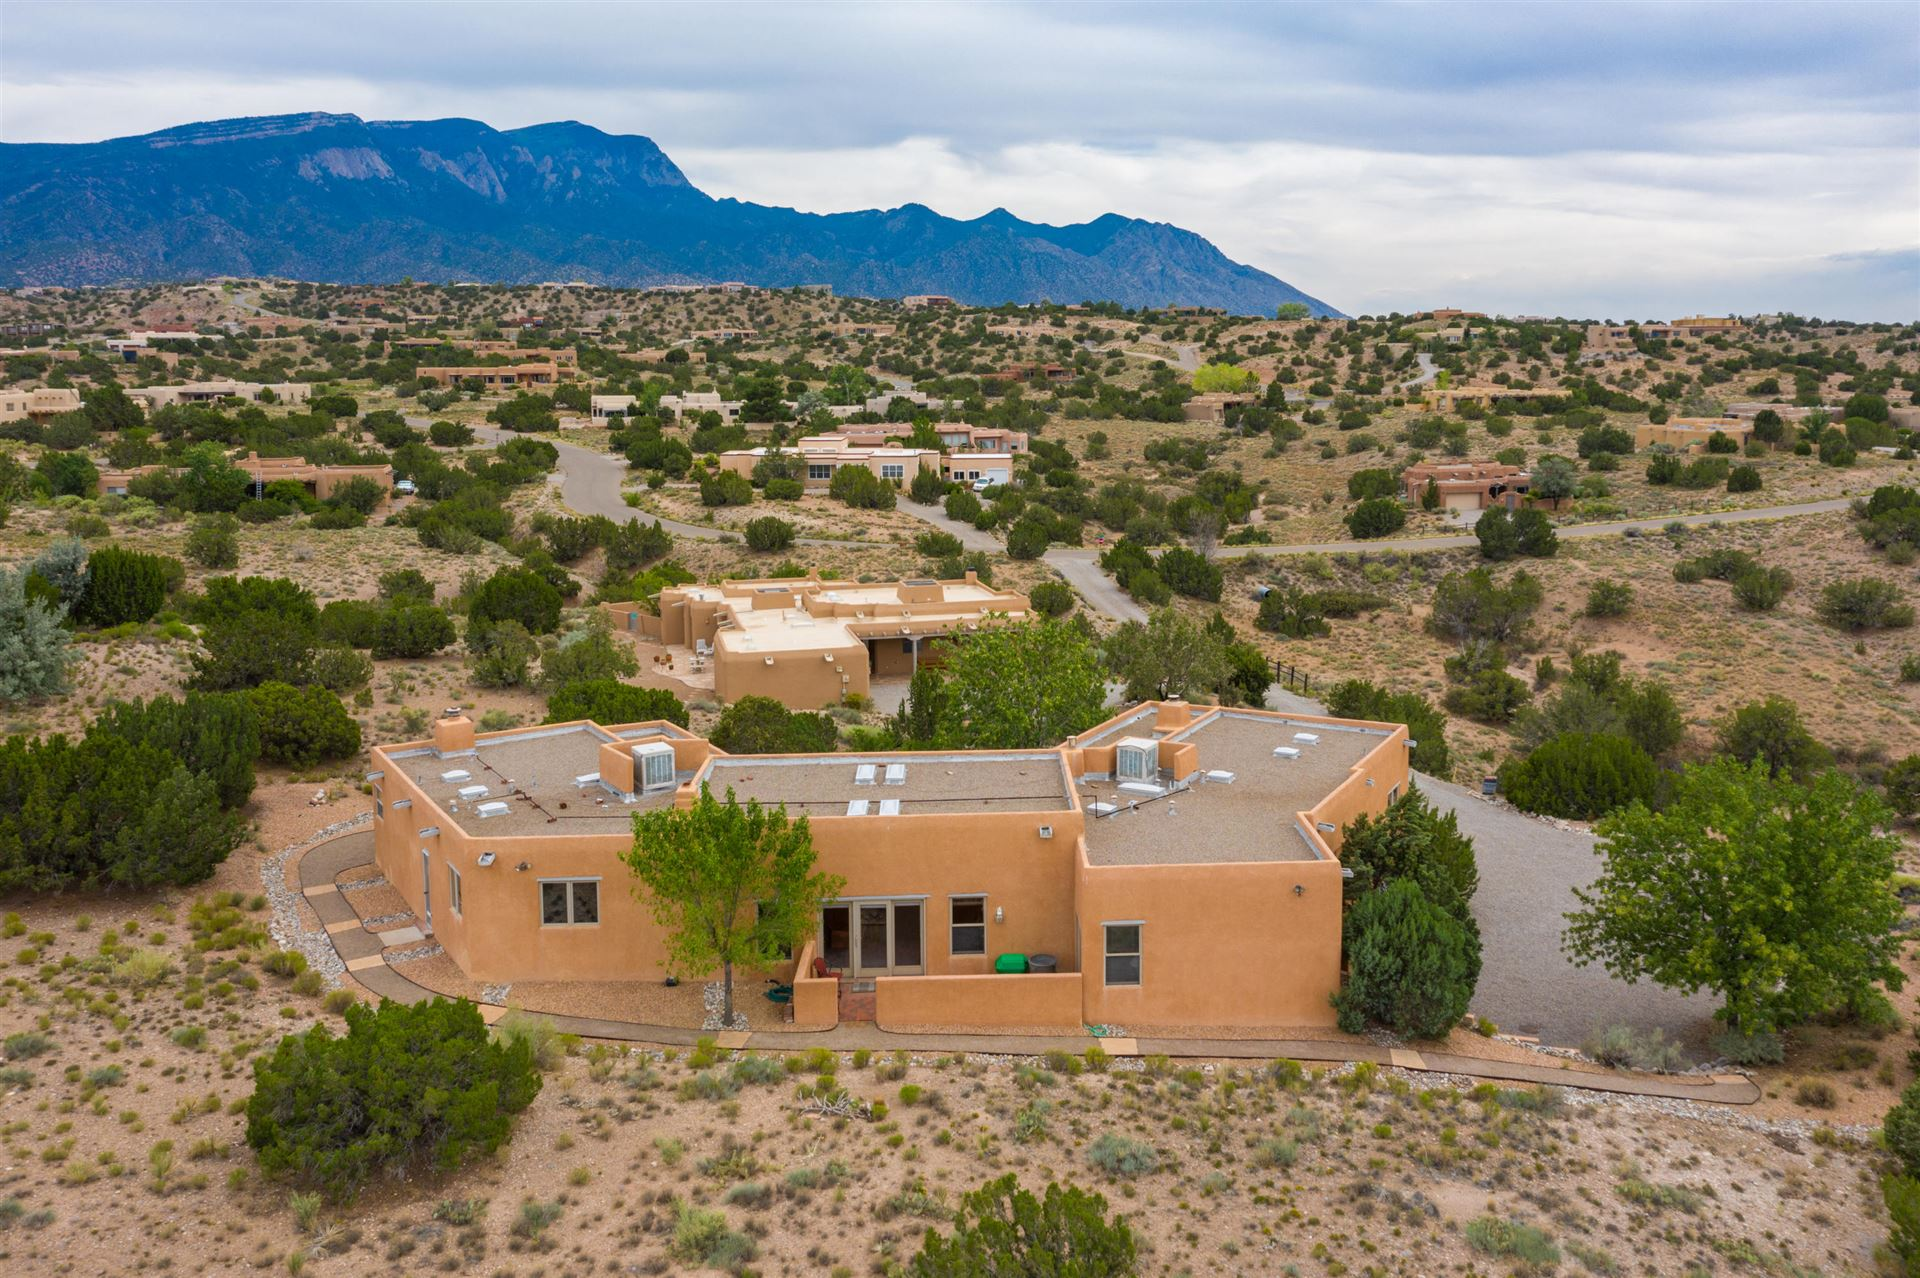 Photo of 6 CAMINO NORTE VISTA, Placitas, NM 87043 (MLS # 971416)